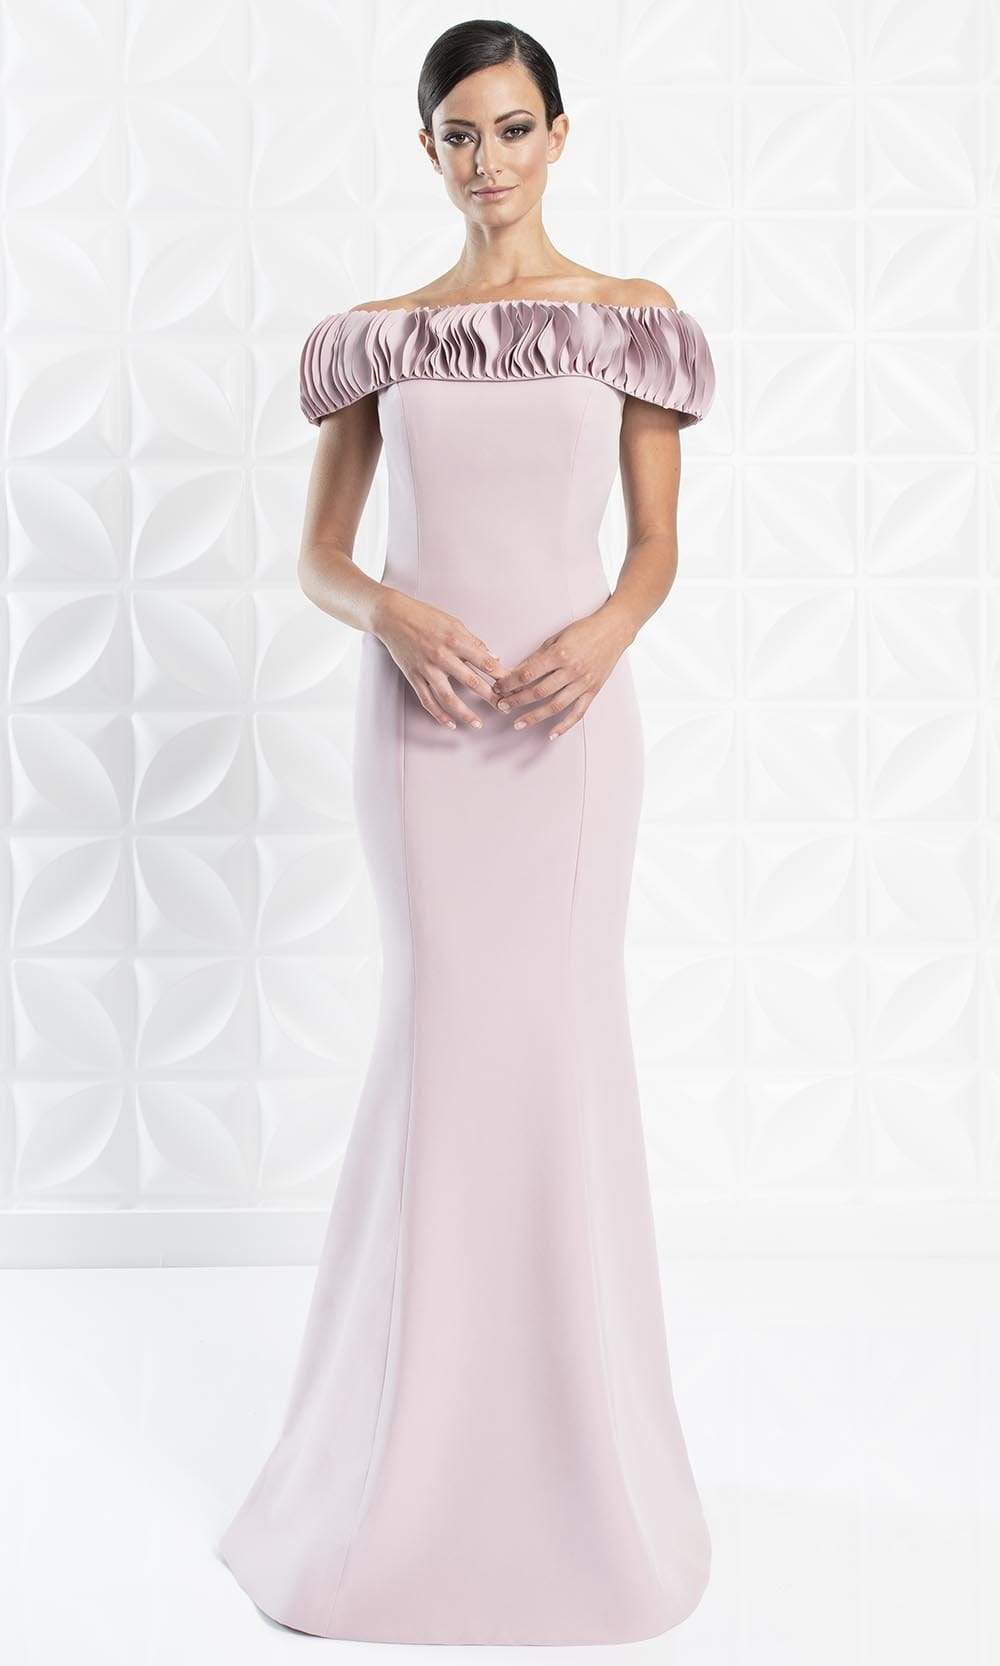 Alexander By Daymor - 1280 Ruffled Off-Shoulder Trumpet Dress from Alexander By Daymor